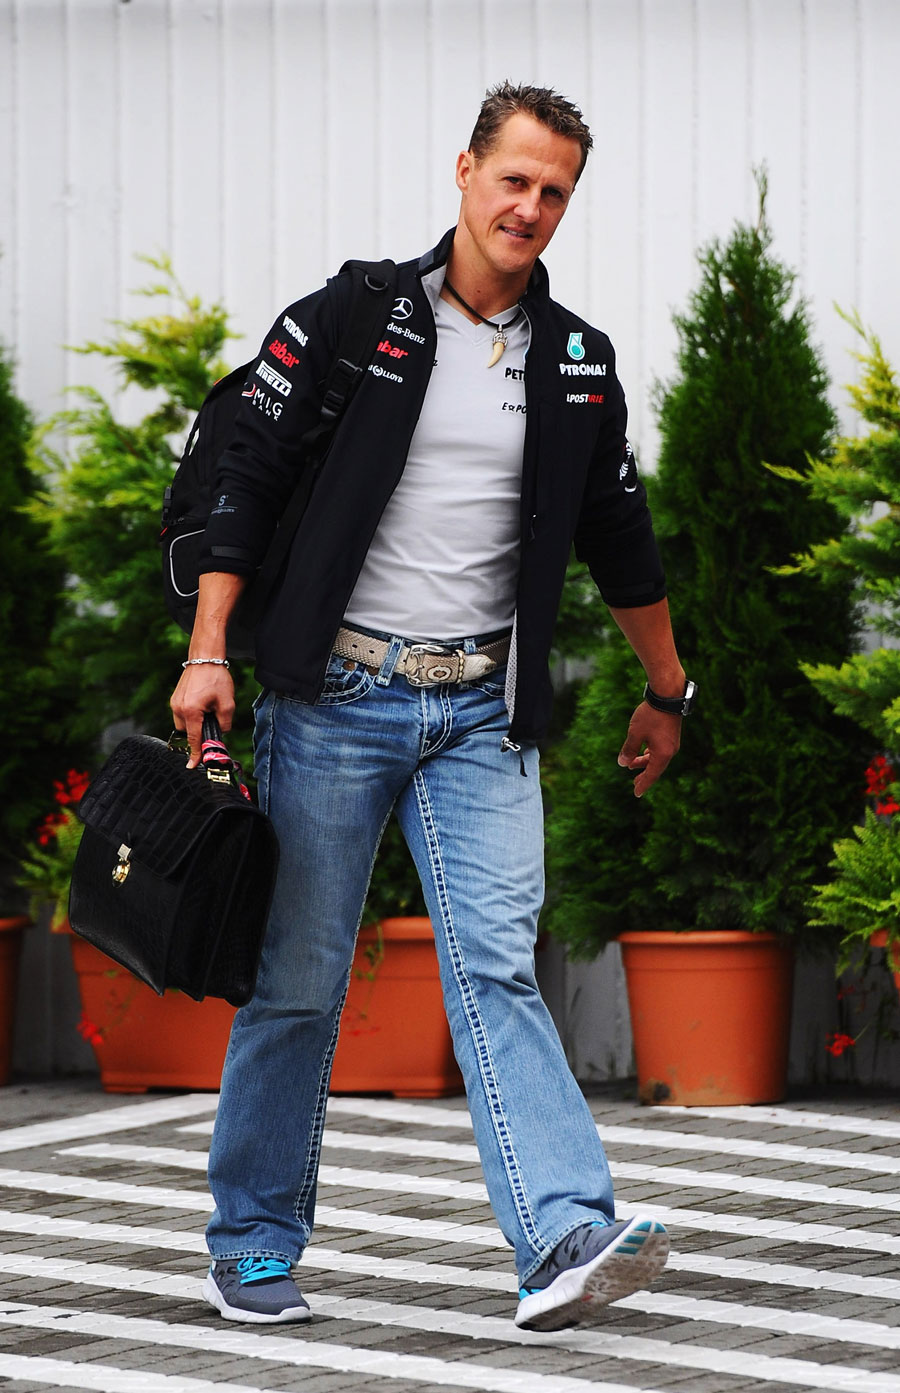 Michael Schumacher arrives in the paddock